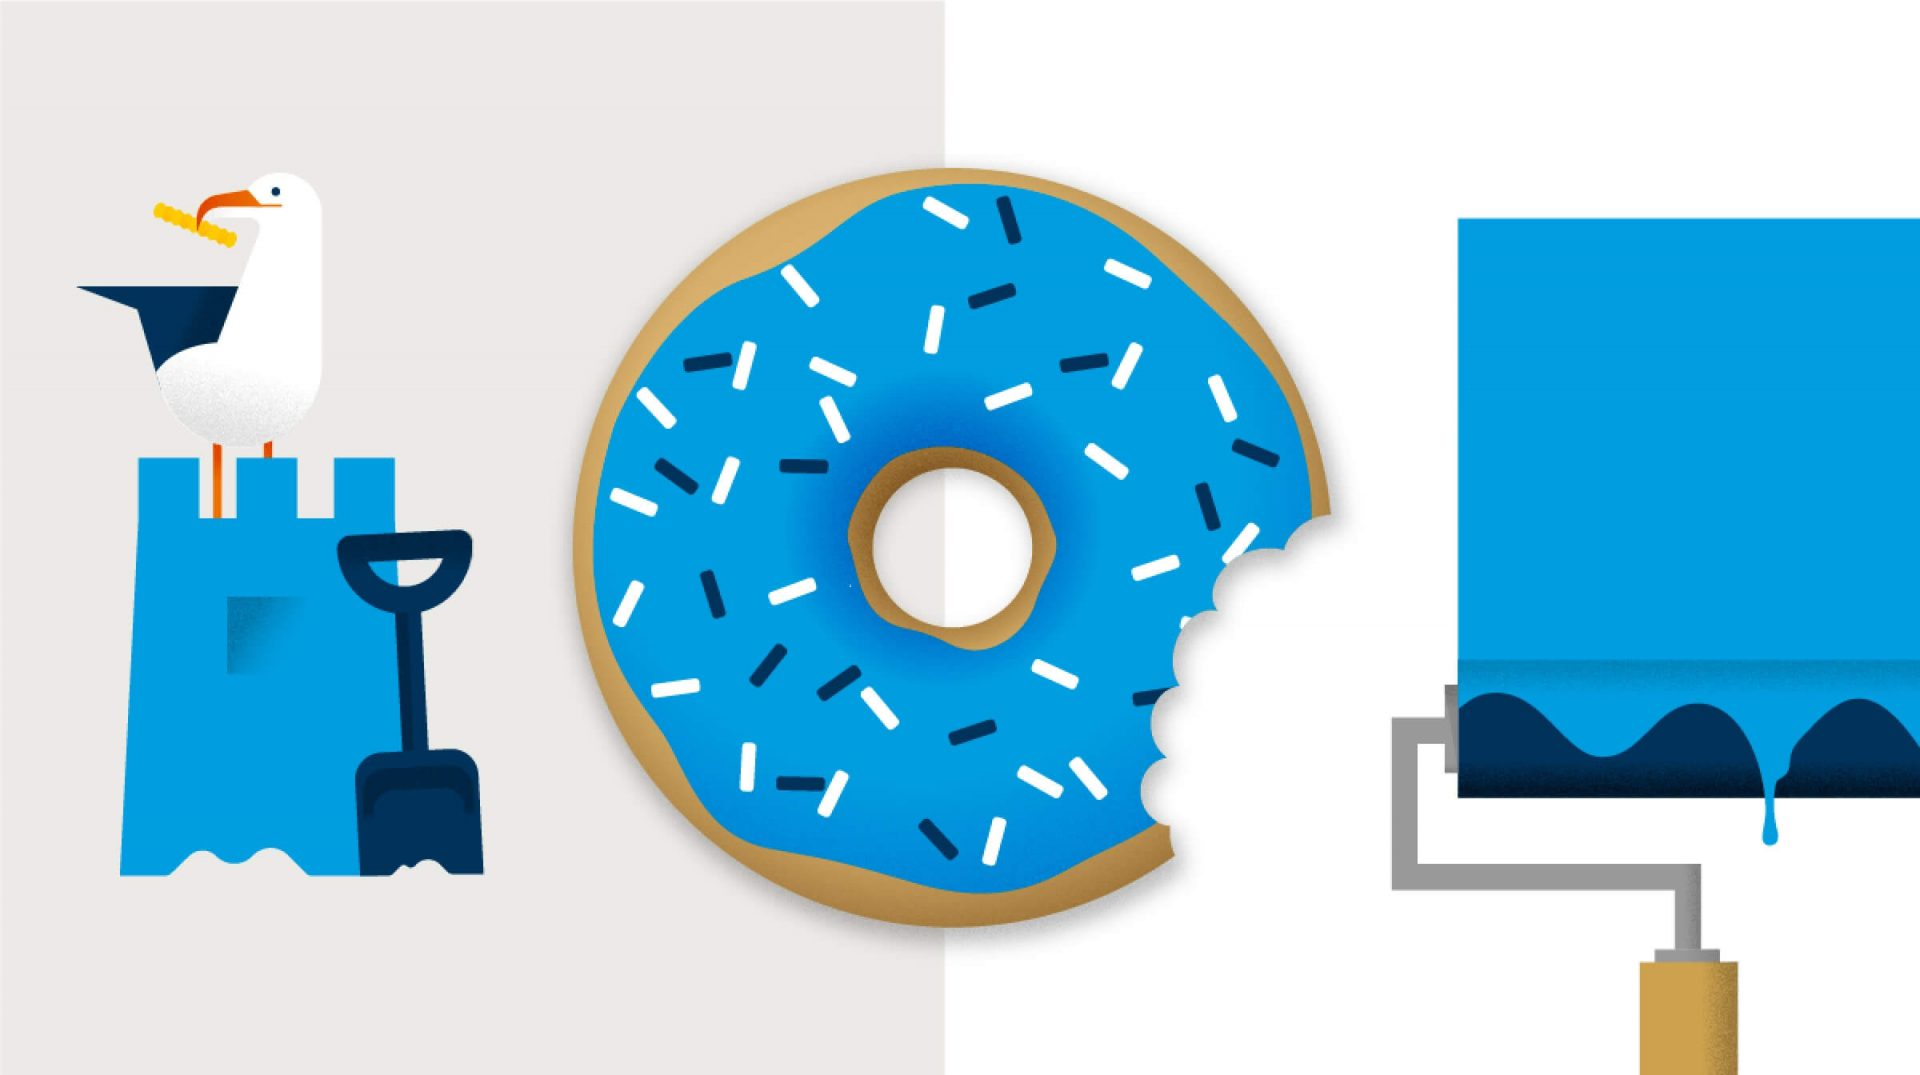 The illustrations using the Bupa Cyan – a seagull on a sandcastle, a donut with a bite taken out and a paint roller below a blue square of paint